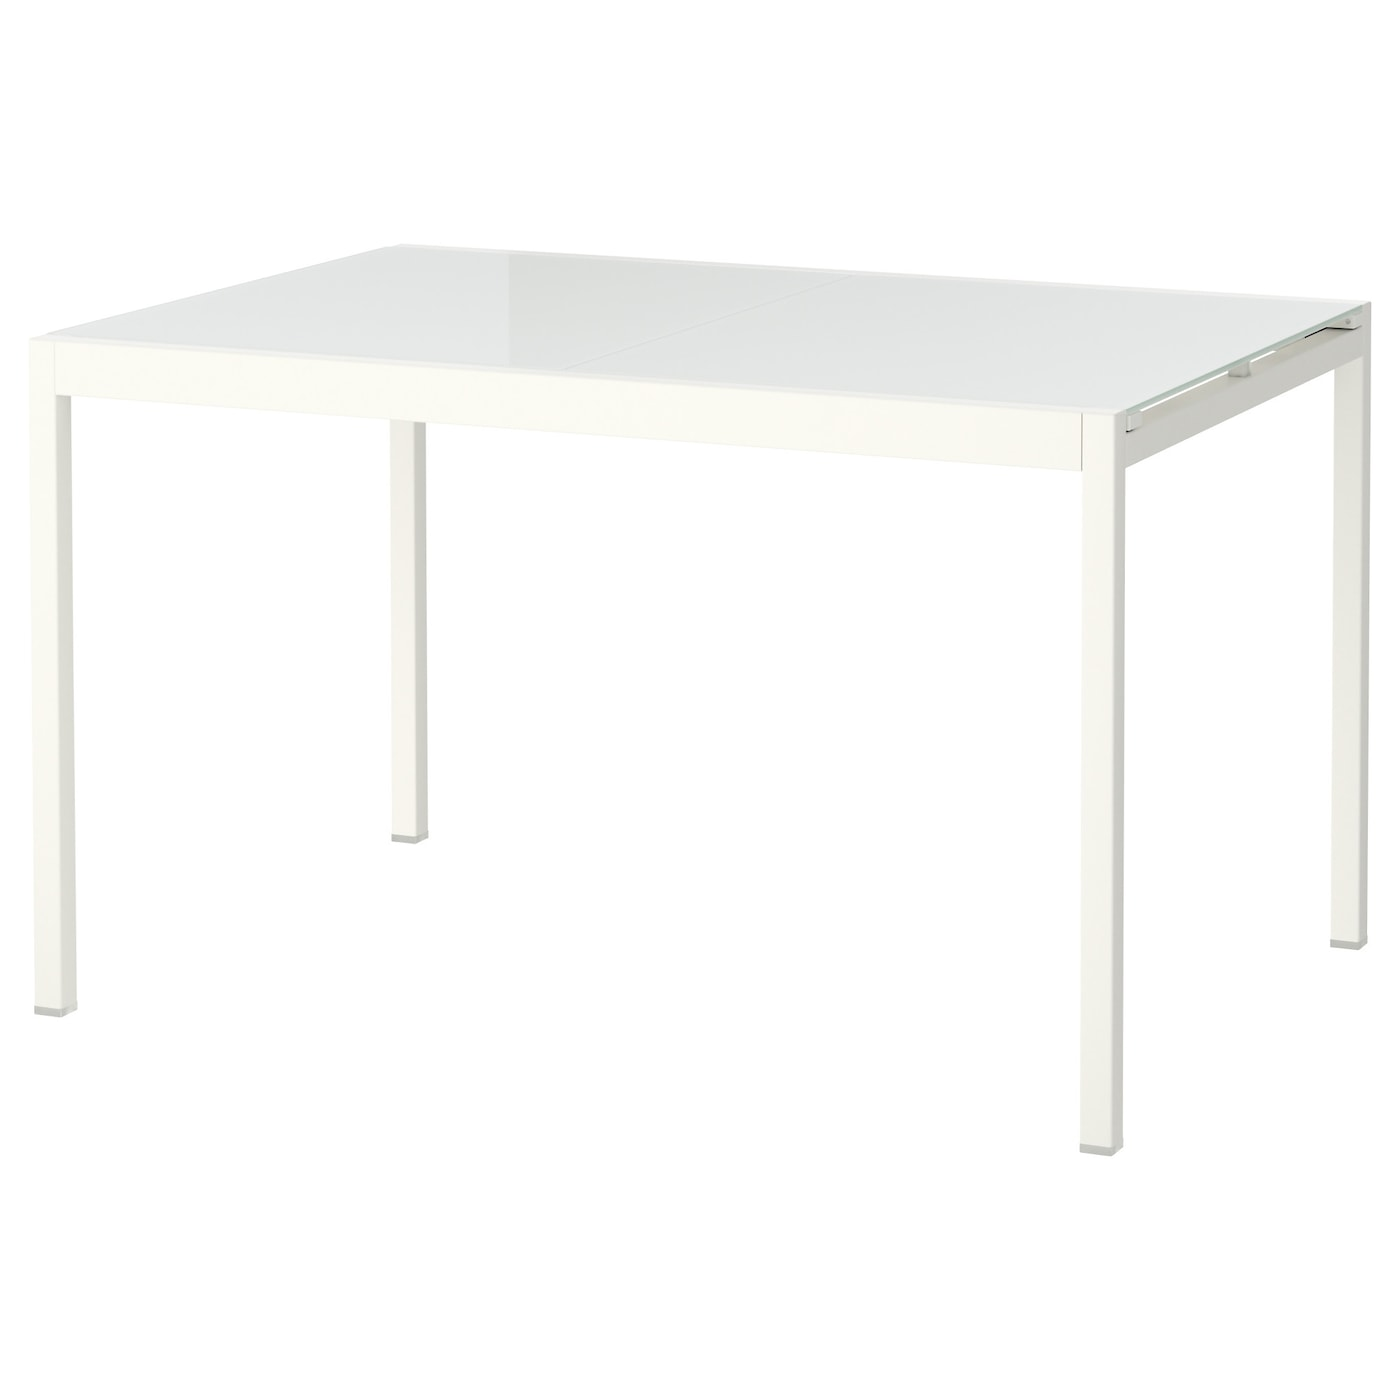 glivarp table extensible blanc 125 188 x 85 cm ikea. Black Bedroom Furniture Sets. Home Design Ideas